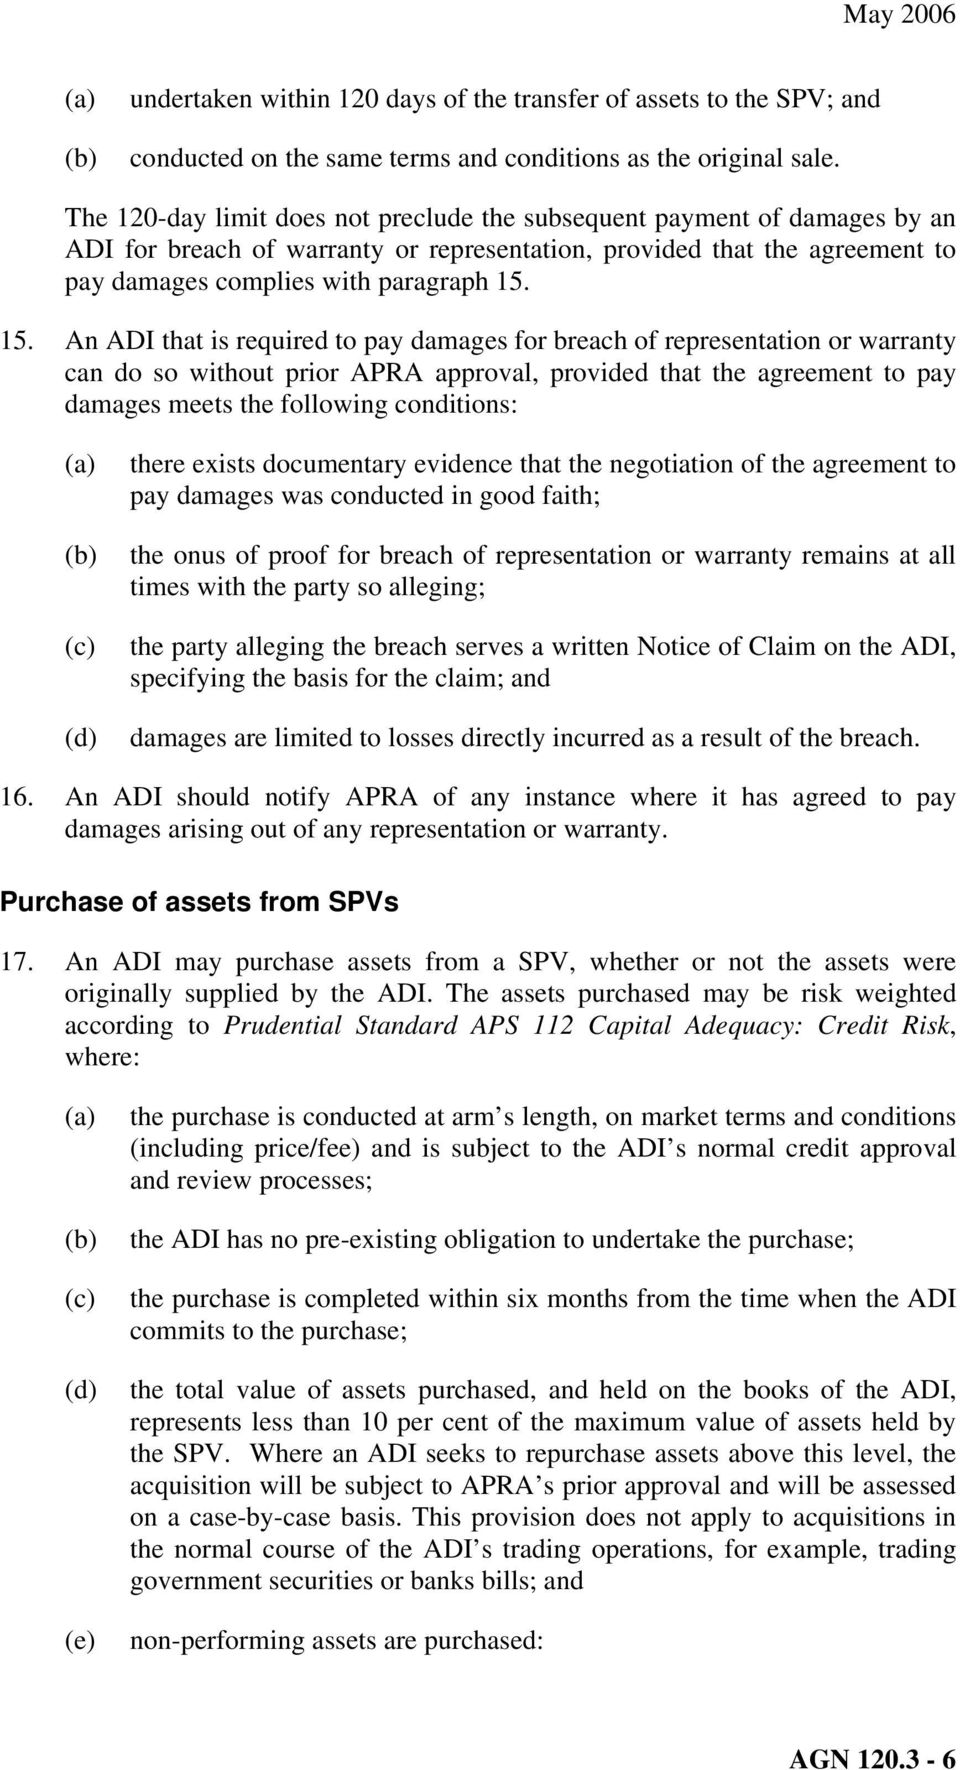 15. An ADI that is required to pay damages for breach of representation or warranty can do so without prior APRA approval, provided that the agreement to pay damages meets the following conditions: